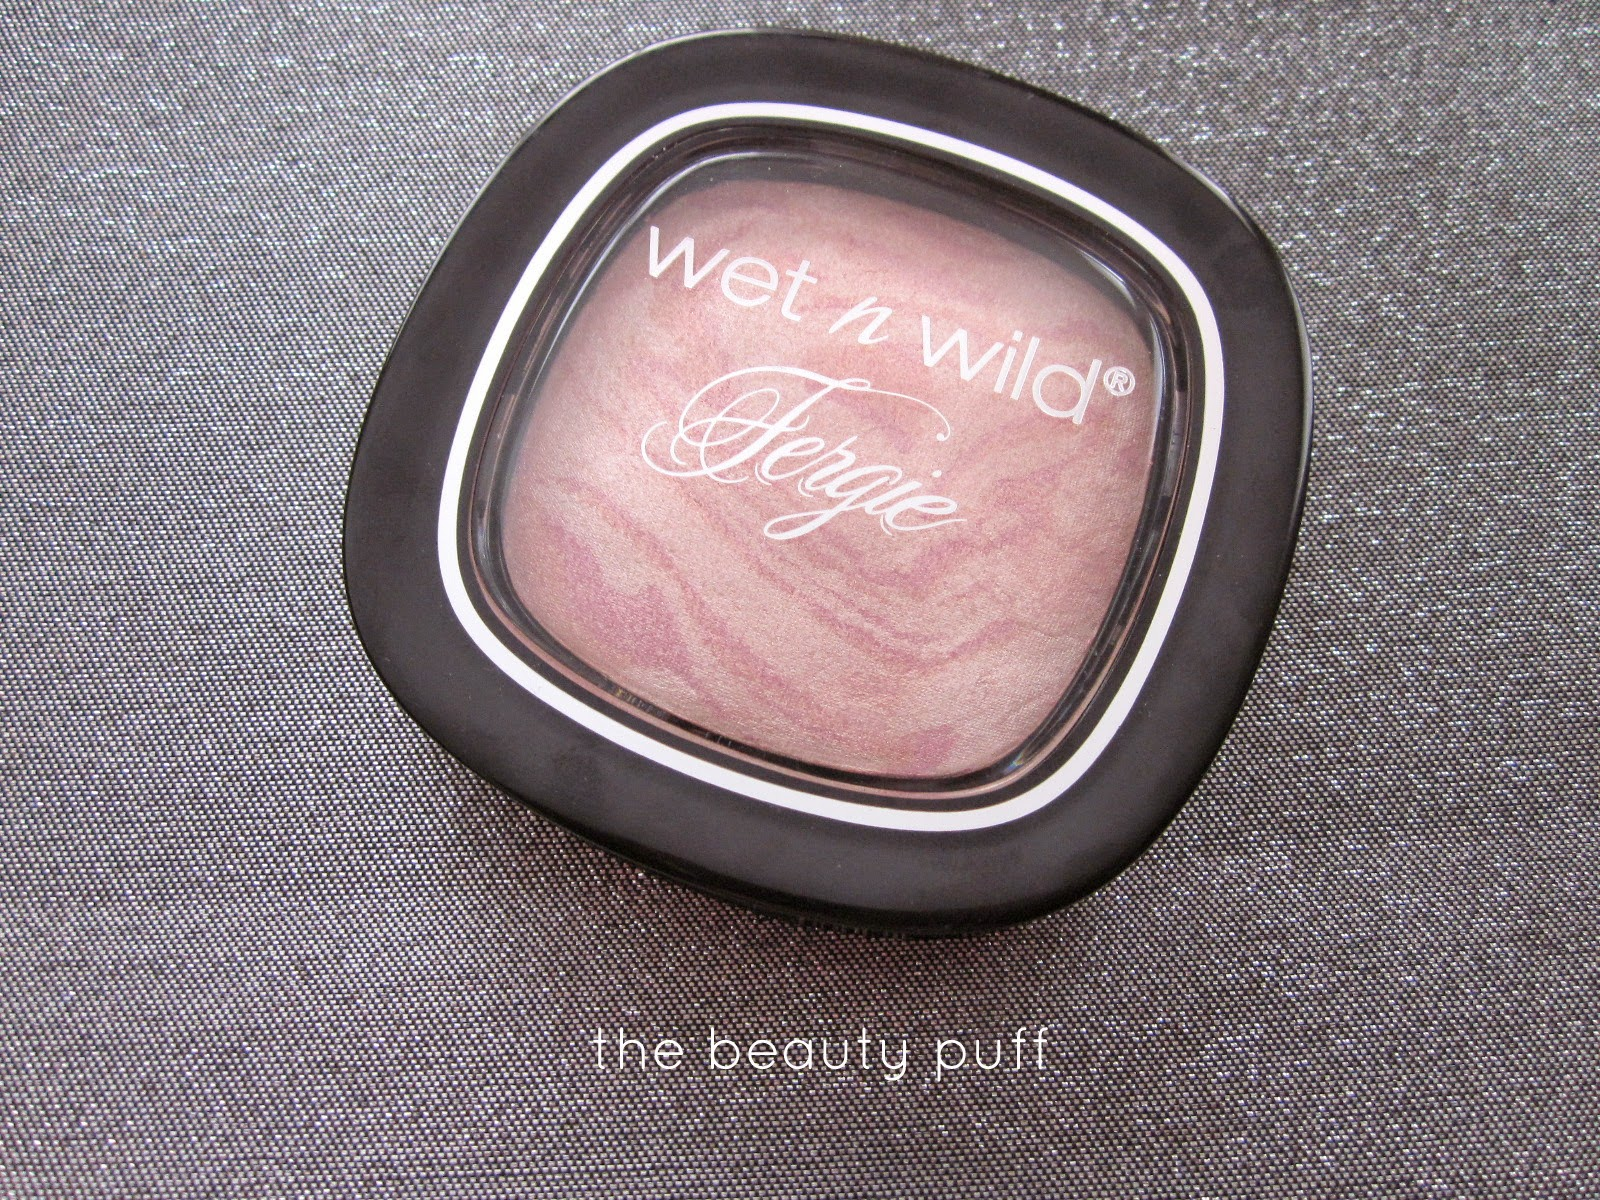 wet n wild rose champagne glow - the beauty puff